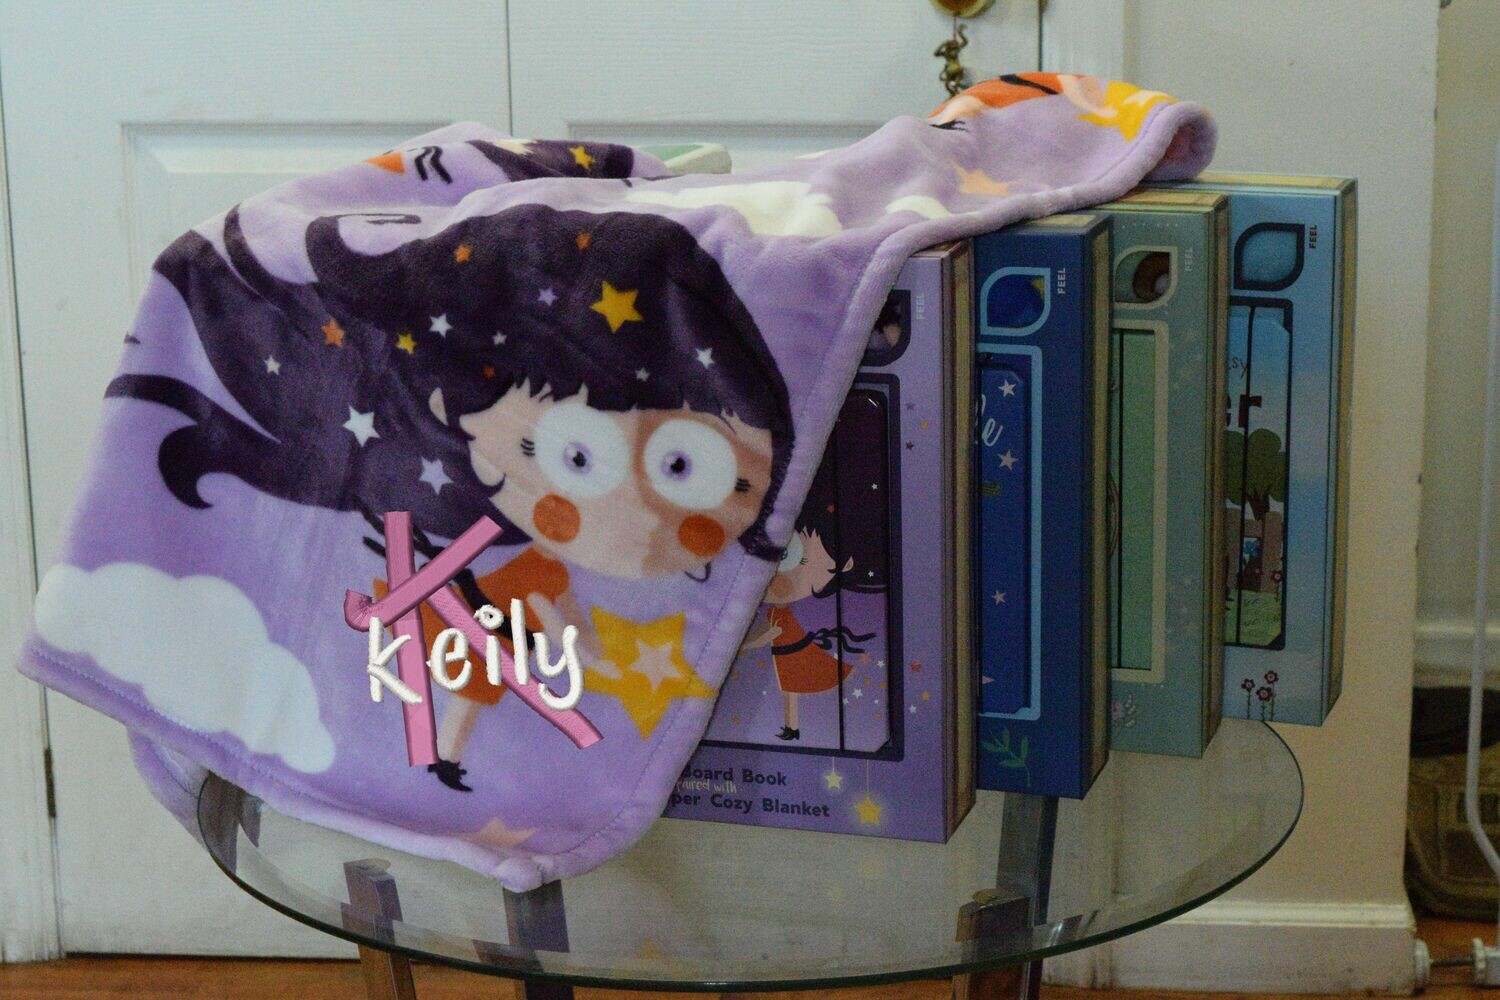 Nursery Rhyme Book and Personalized Embroidered Blanket Children Gift Set (Purple)